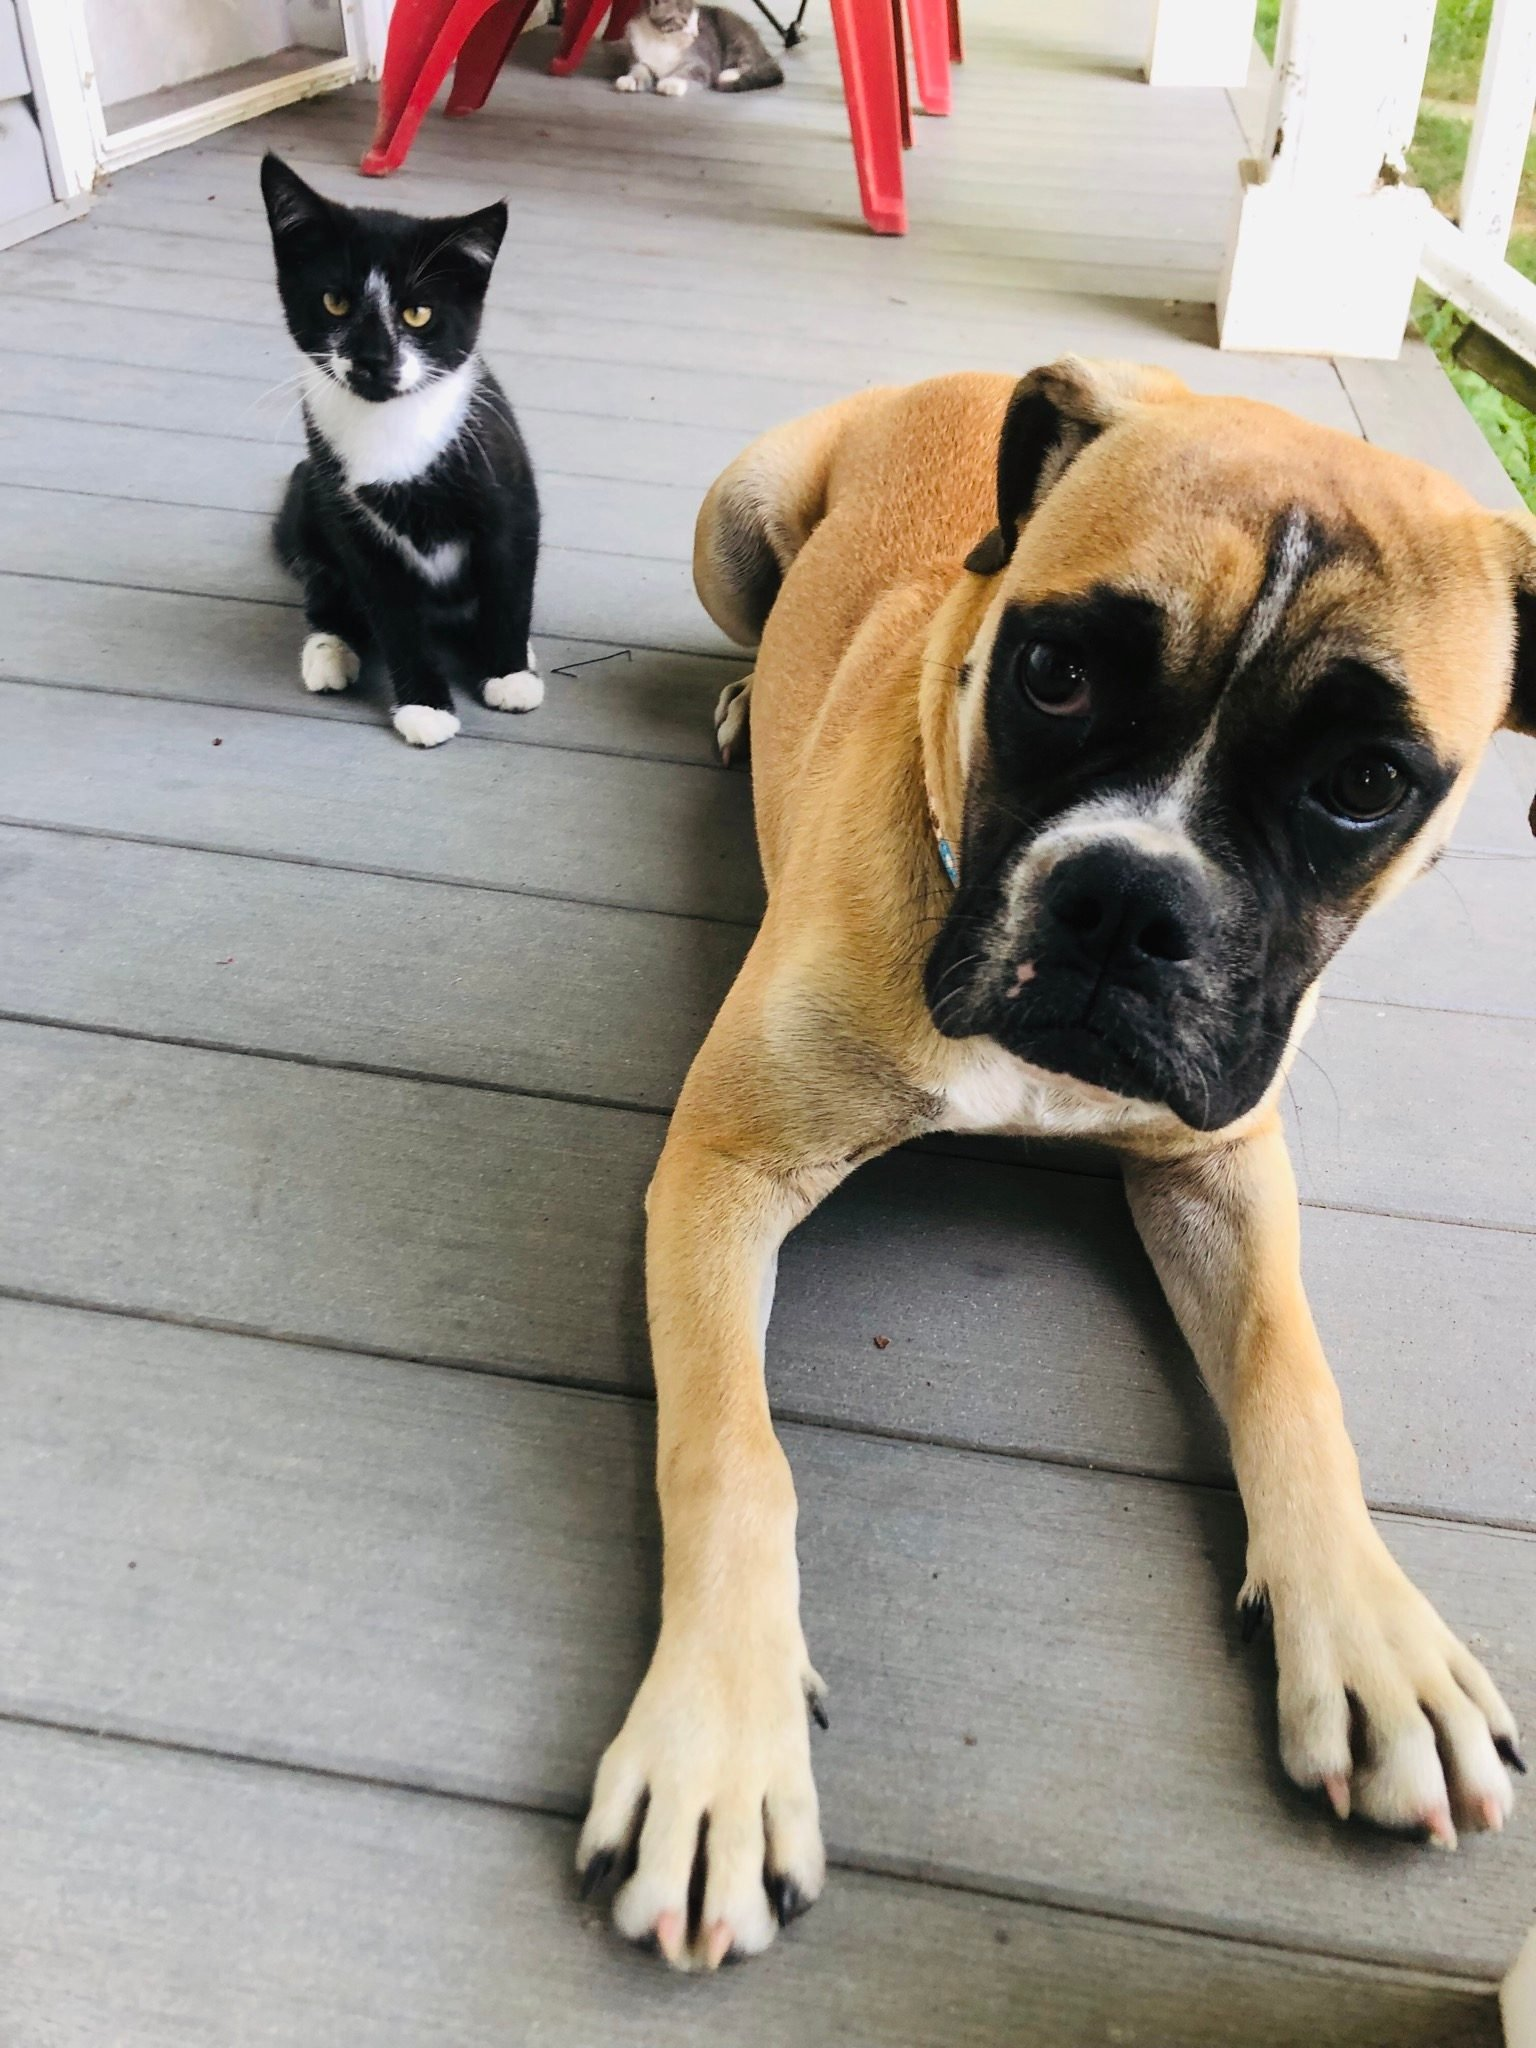 small kitten and larger dog on a front porch